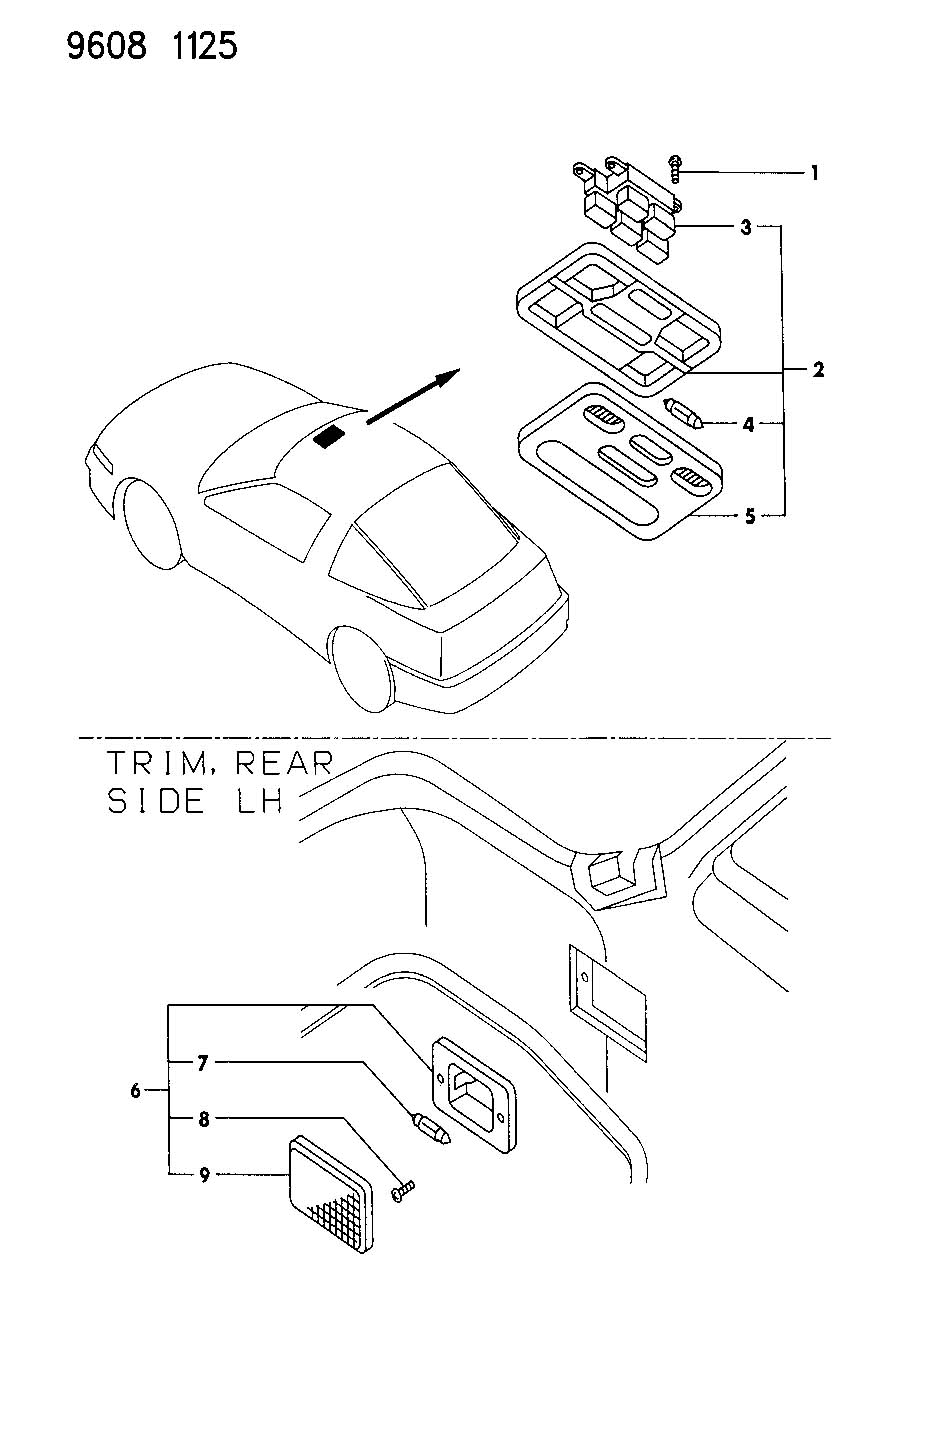 1990 eagle talon engine wiring diagram